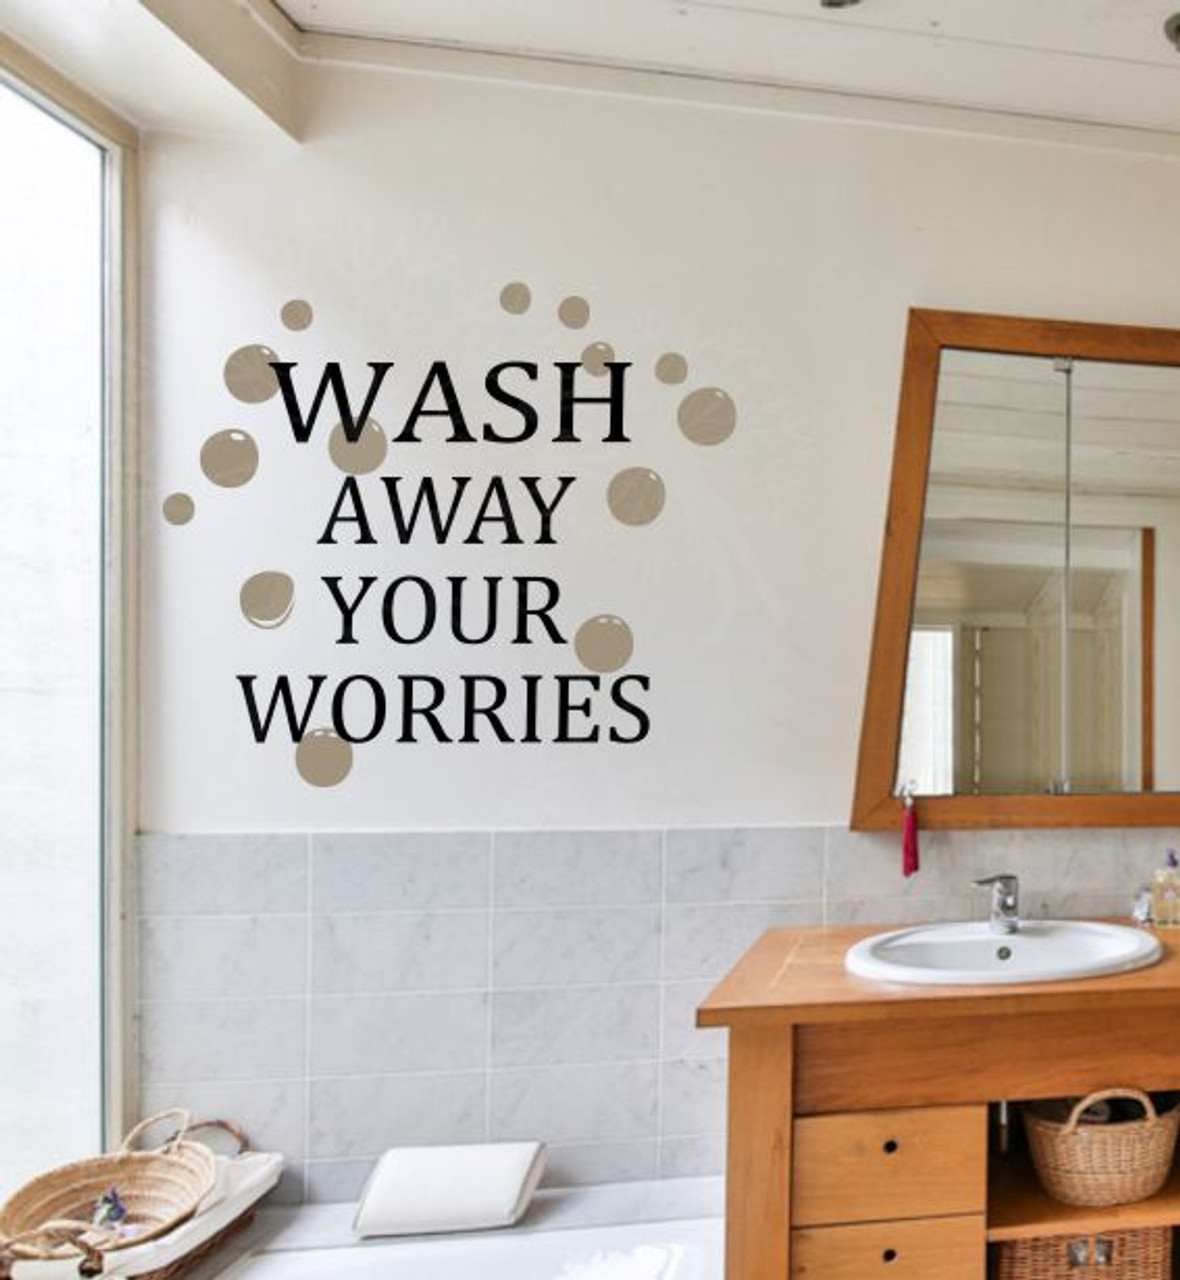 wash away your worries vinyl lettering bubbles art bath wall decals